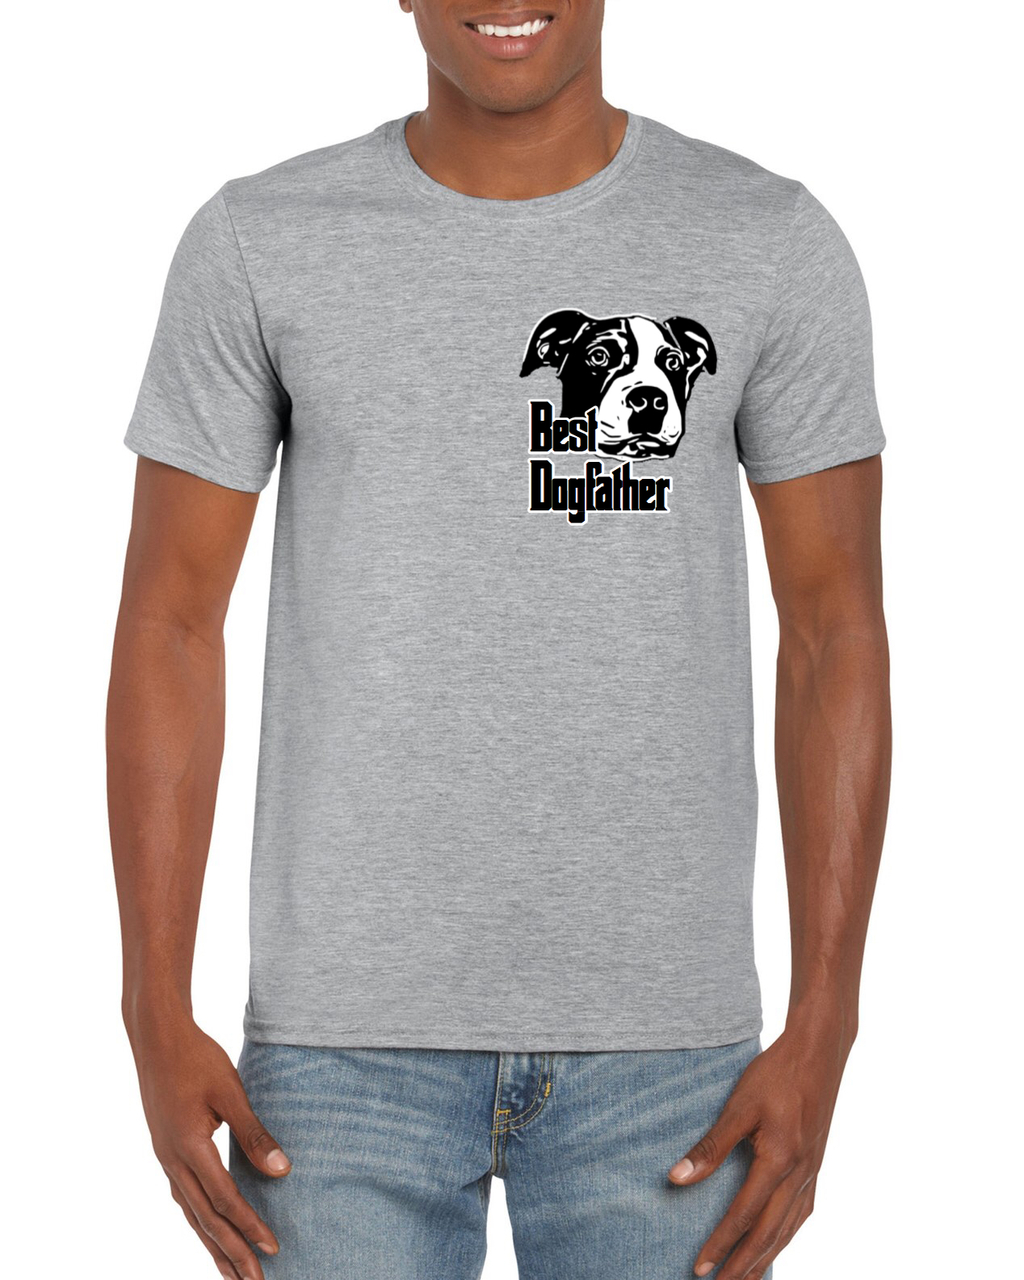 BEST DOGFATHER Unisex Gray Tee